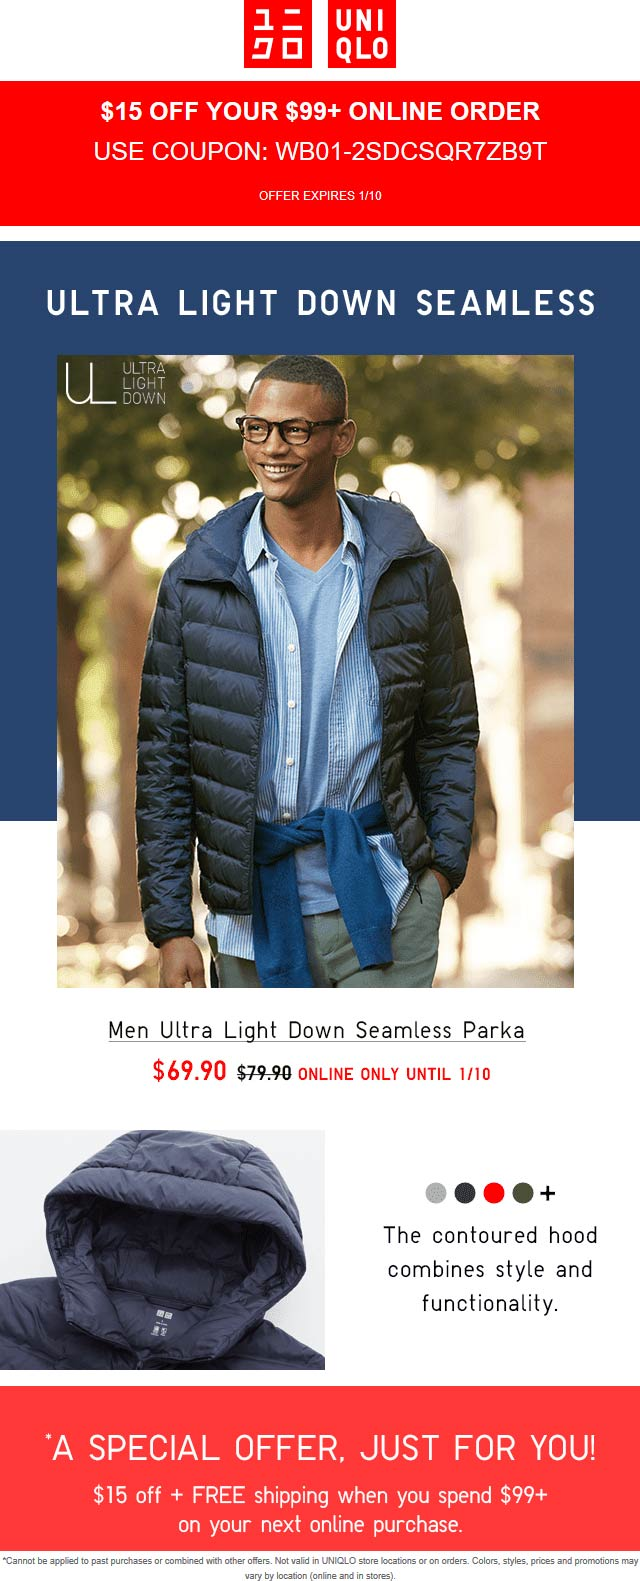 Uniqlo Coupon October 2019 $15 off $99 online at Uniqlo via promo code WB01-2SDCSQR7ZB9T